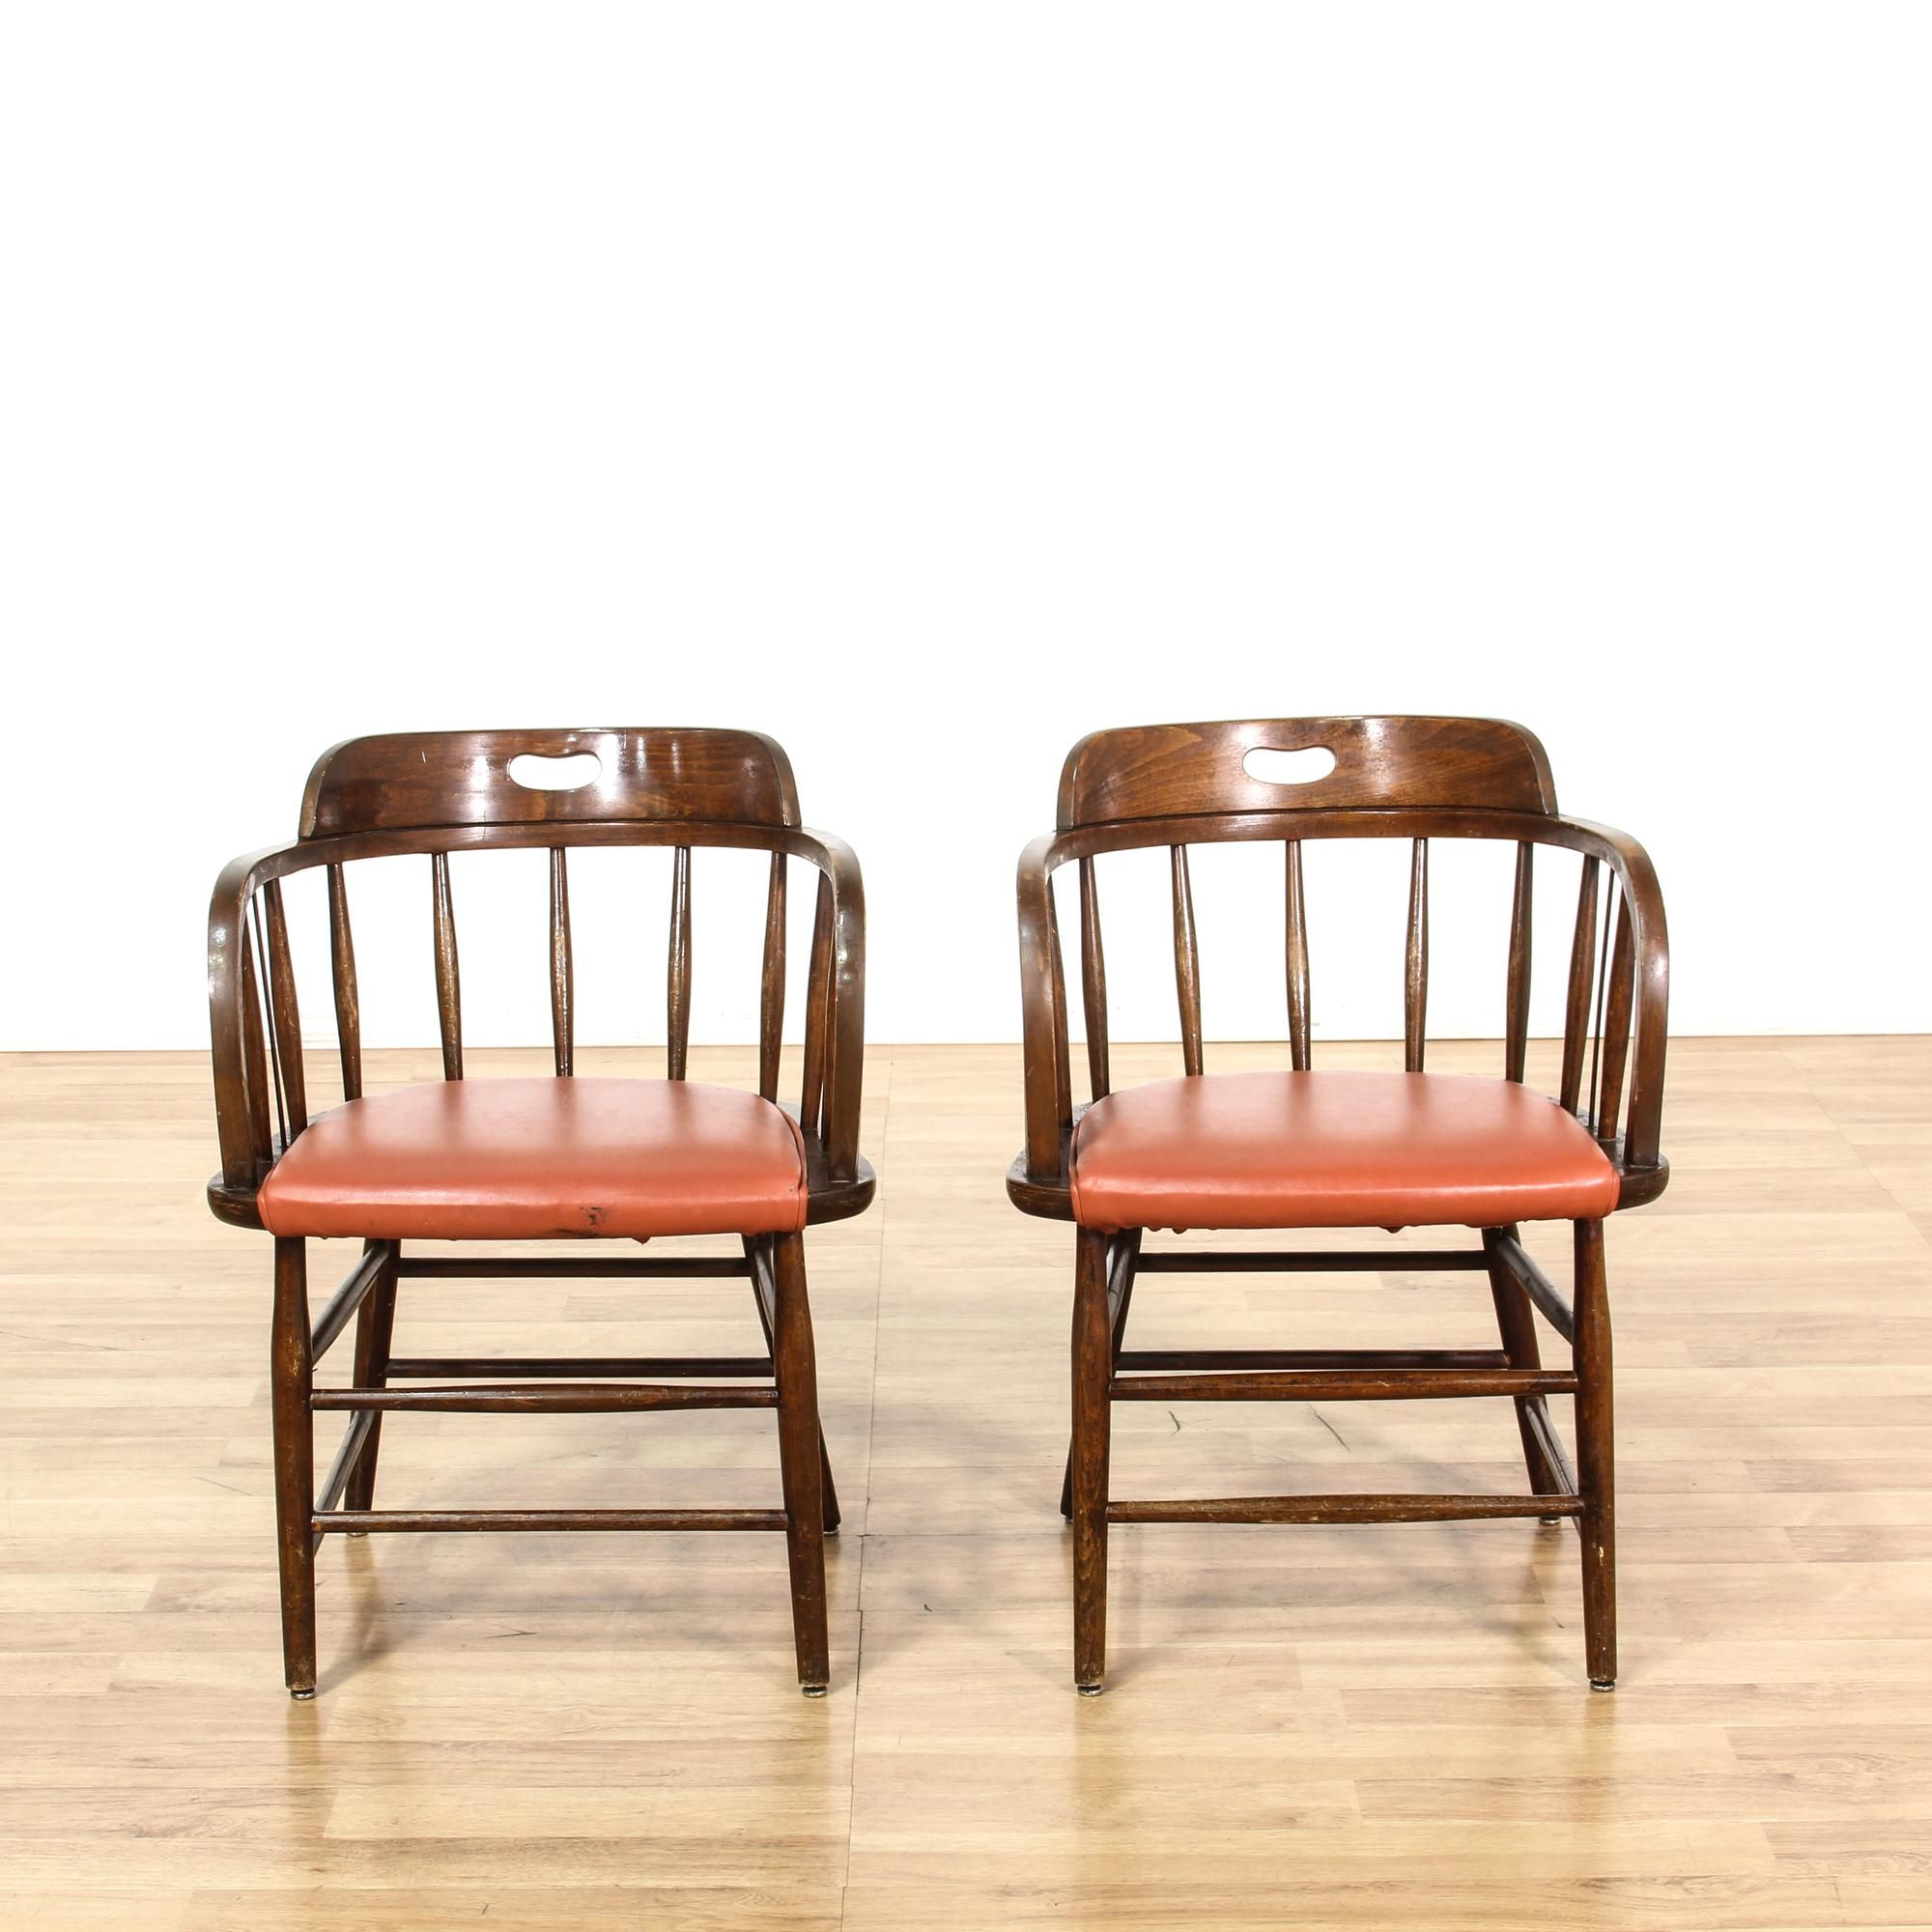 This Pair Of Dining Chairs Is Featured In A Solid Wood With A Glossy Walnut Finish Each Traditional Style Side Chair H Orange Cushions Chair Vintage Furniture